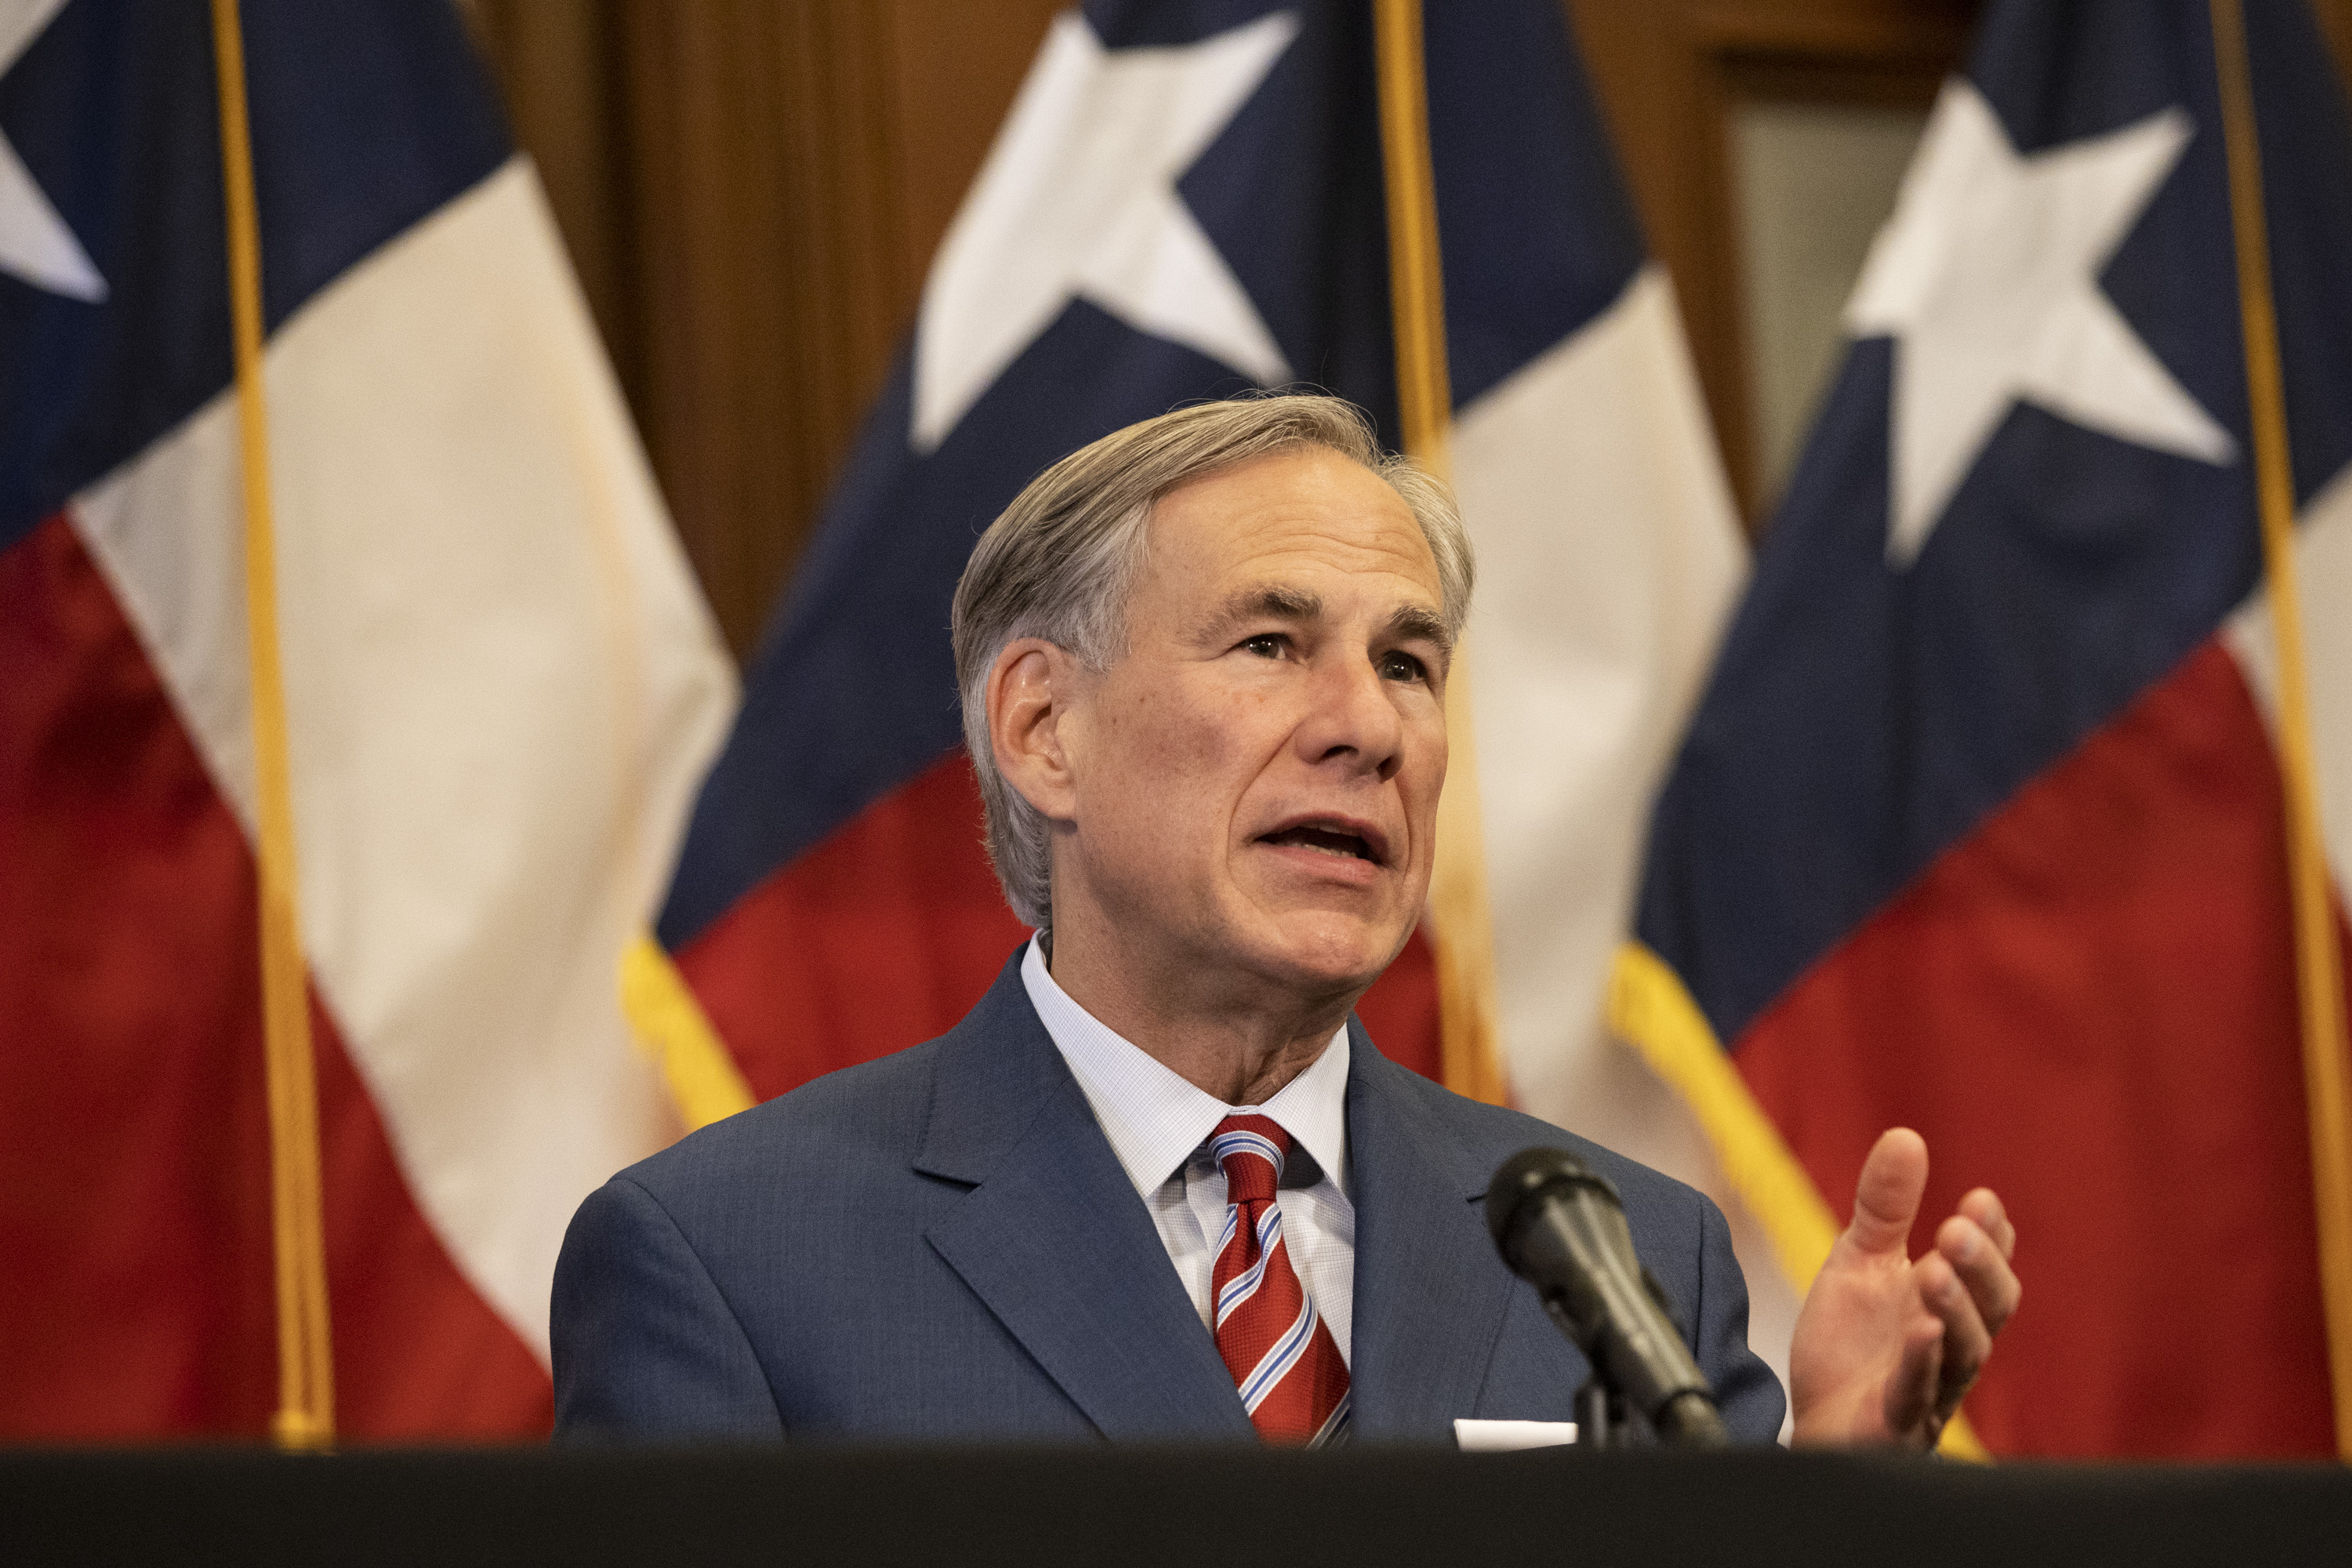 Texas Gov. Greg Abbott speaks at a press conference in Austin, Texas, on May 18.